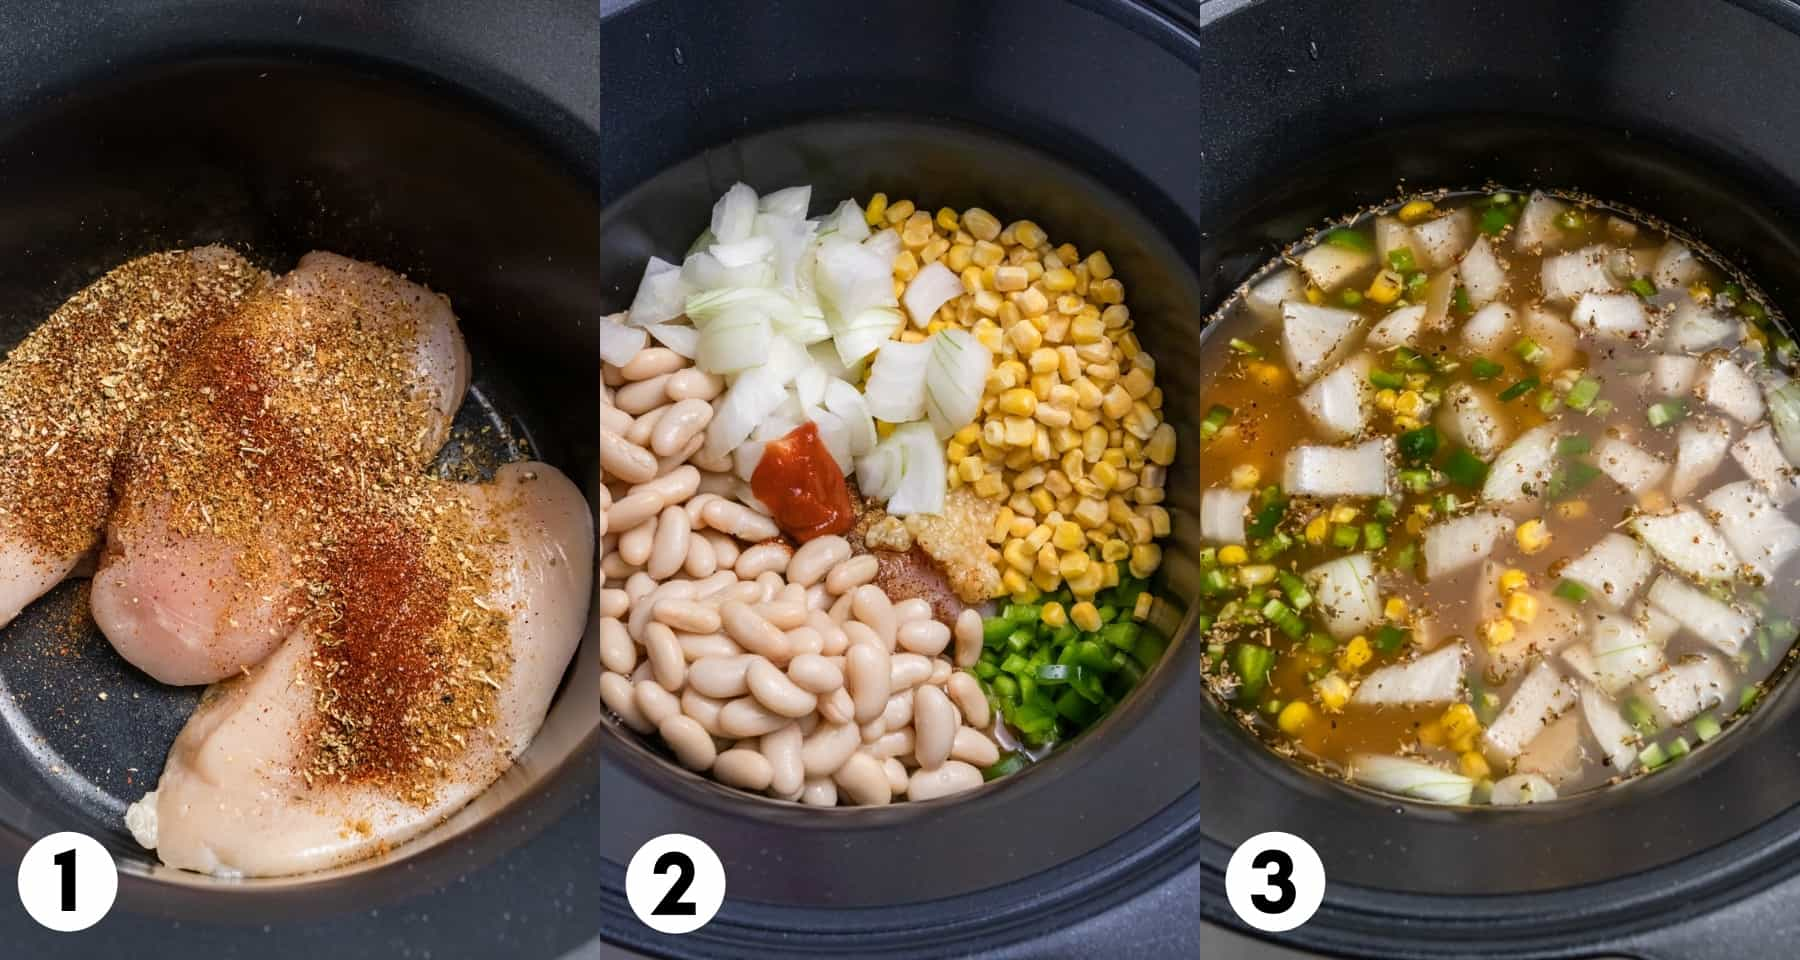 Chicken with seasoning in crock pot plus corn, beans and other ingredients.